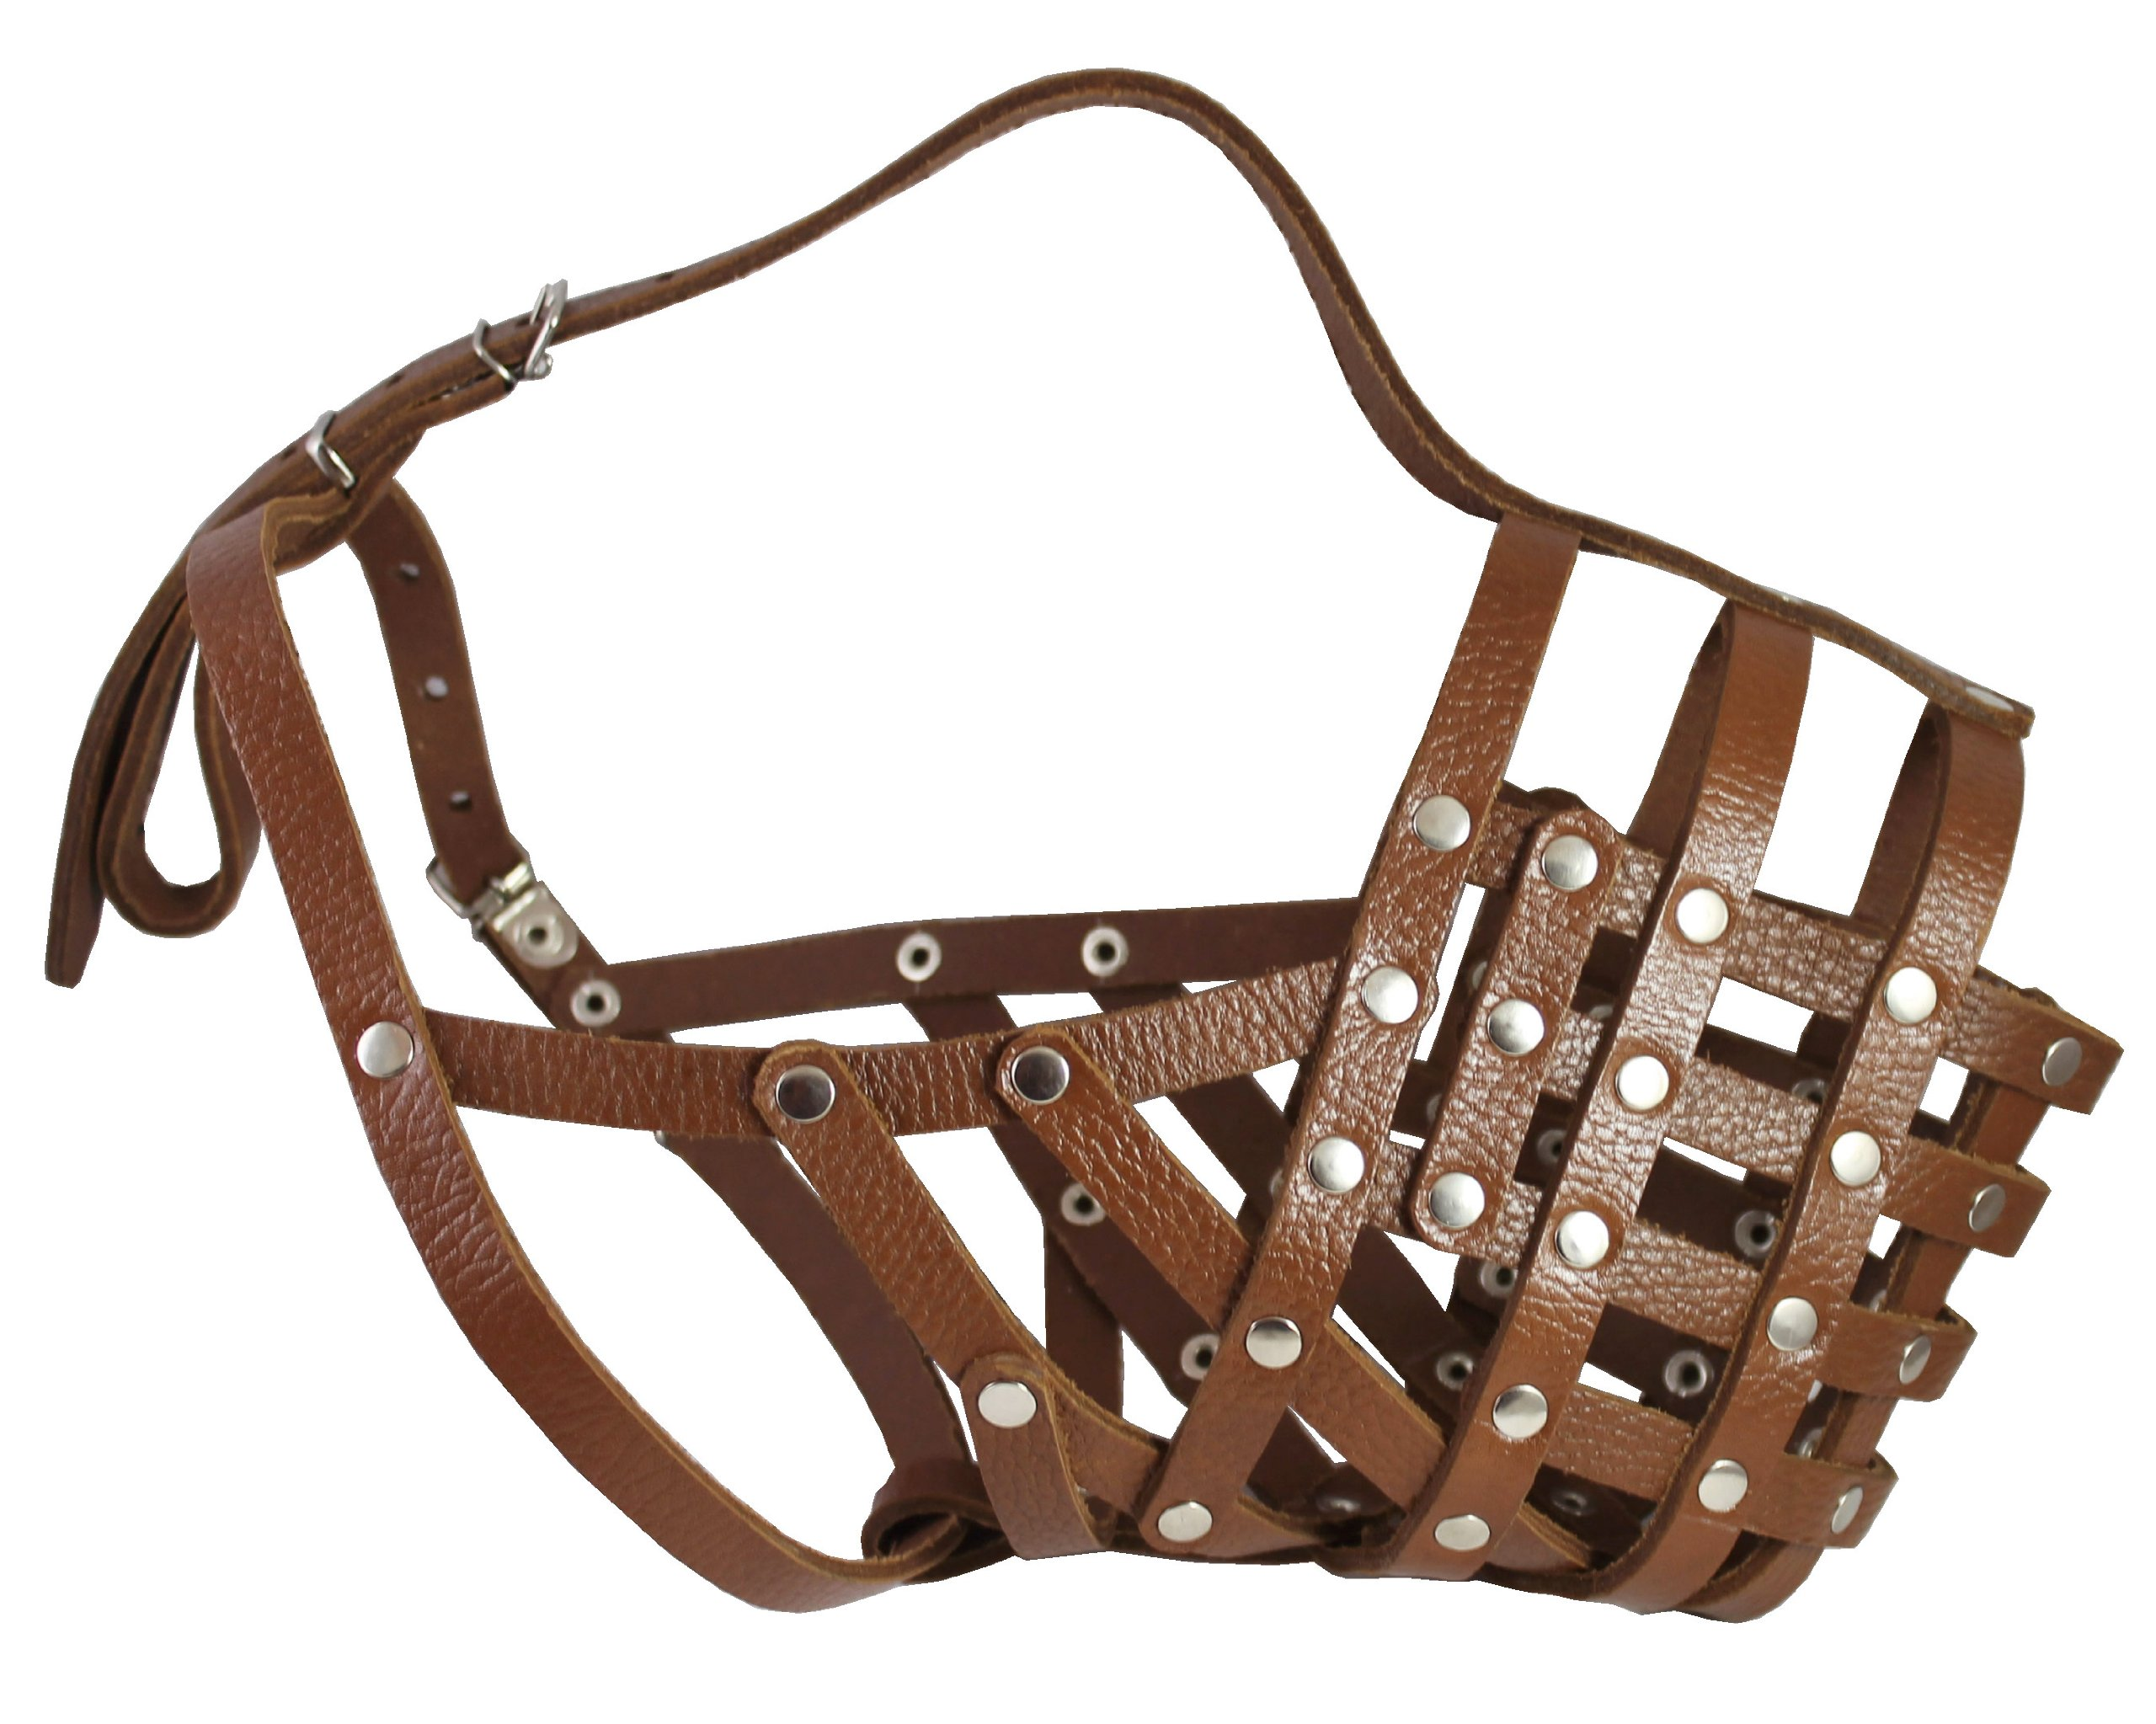 Secure Leather Mesh Basket Dog Muzzle #16 Brown - Great Dane, Saint Bernard, Mastiff (Circumference 15.5'', Snout Length 4.5'') by Dogs My Love